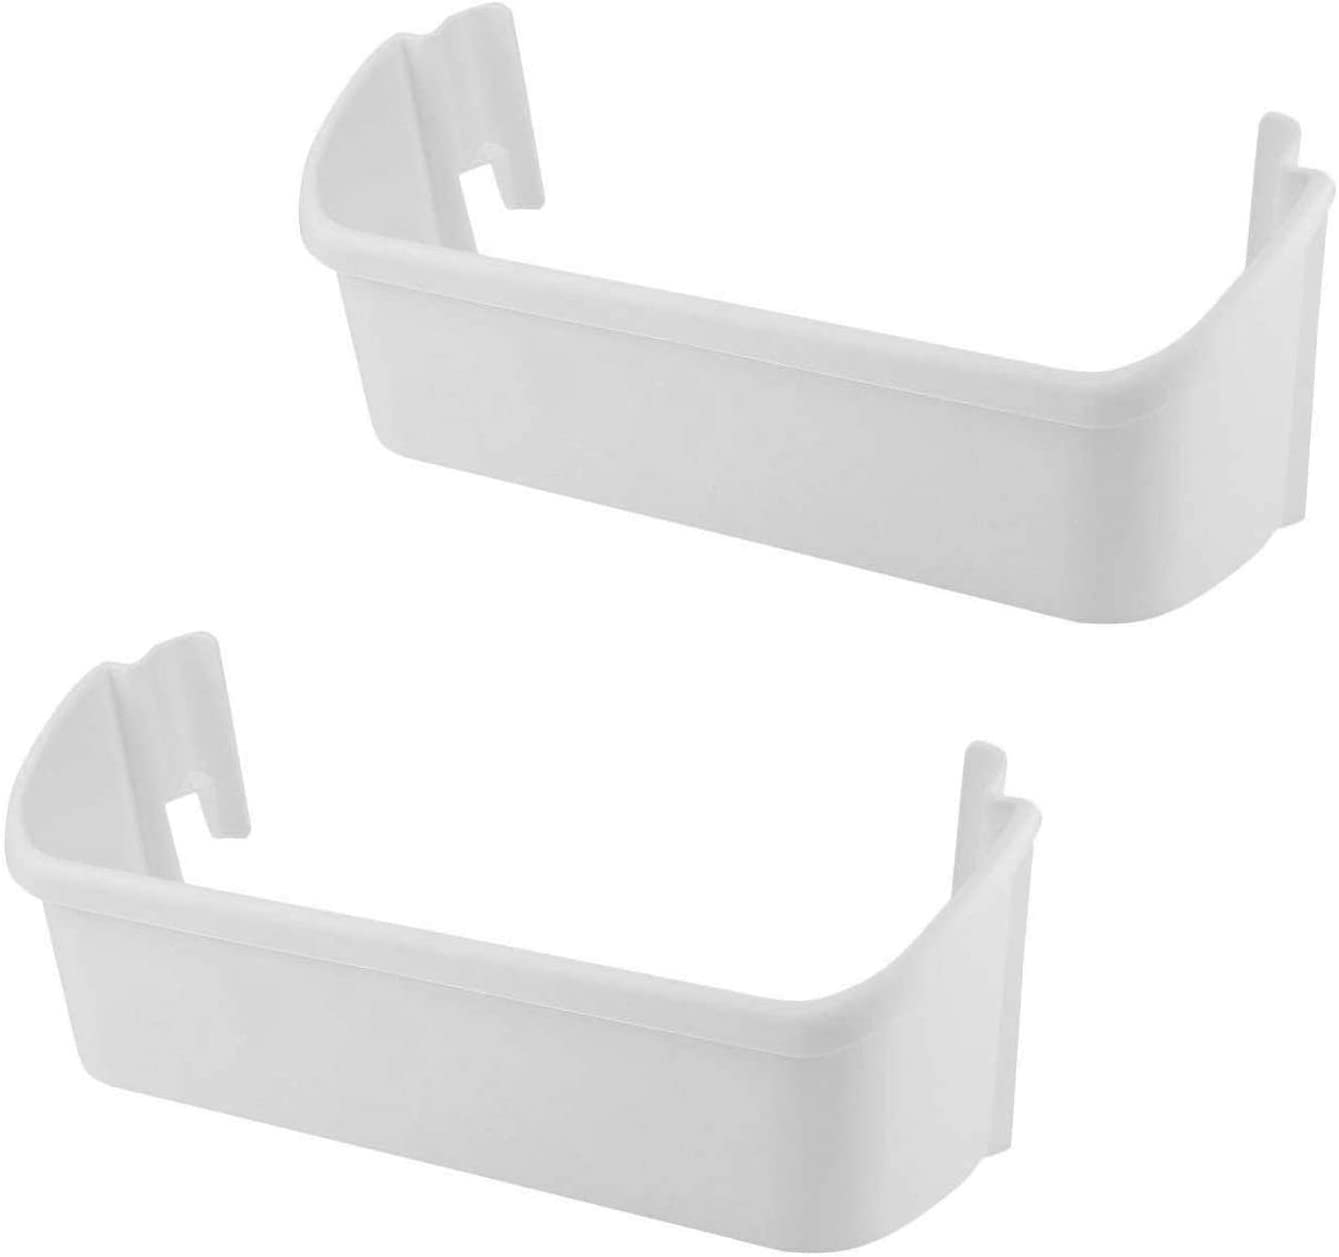 Siwdoy (Pack of 2) 240323001 Refrigerator Door Bin Compatible with Frigidaire Electrolux Refrigerator Repalce 240323007 AP2115741 PS429724, White